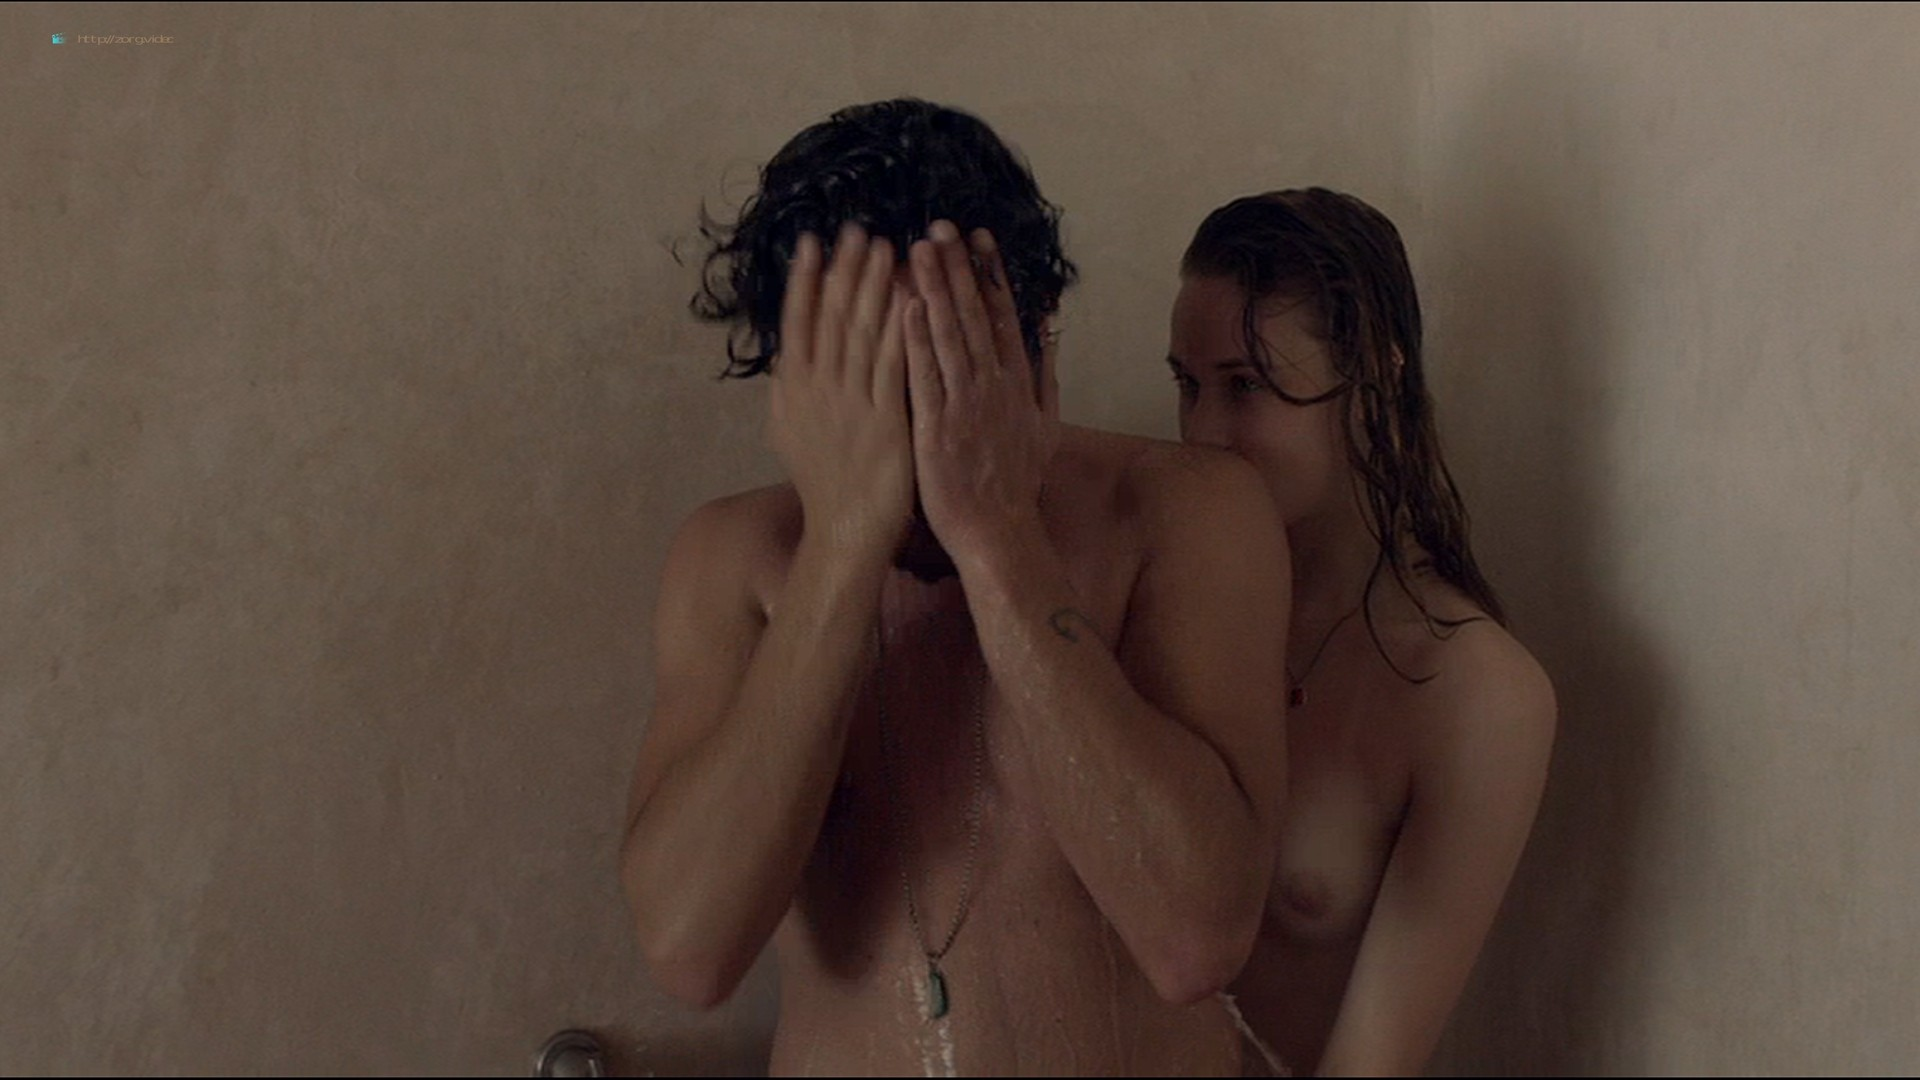 Makenzie Leigh nude giving handjob in the shower - James White (2015) HD 1080p Web (2)